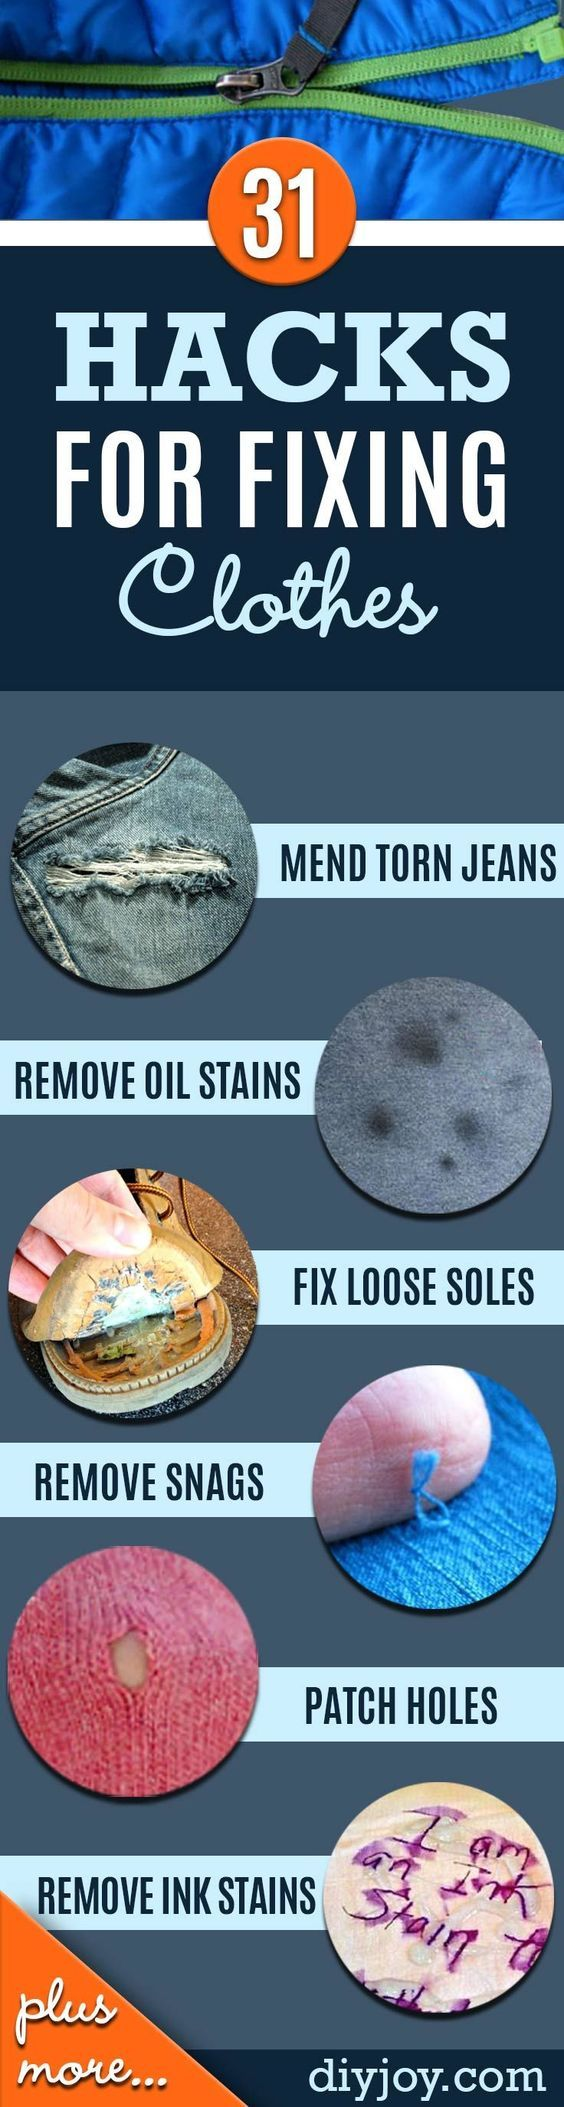 DIY Hacks for Fixing Ruined Clothes. Remove Paint, Gum and Ink. Mend Jeans and Fix Snags in Clothing. Resize and Repair your Jeans, Shirts, Pants and Shoes http://diyjoy.com/diy-hacks-for-fixing-ruined-clothes: